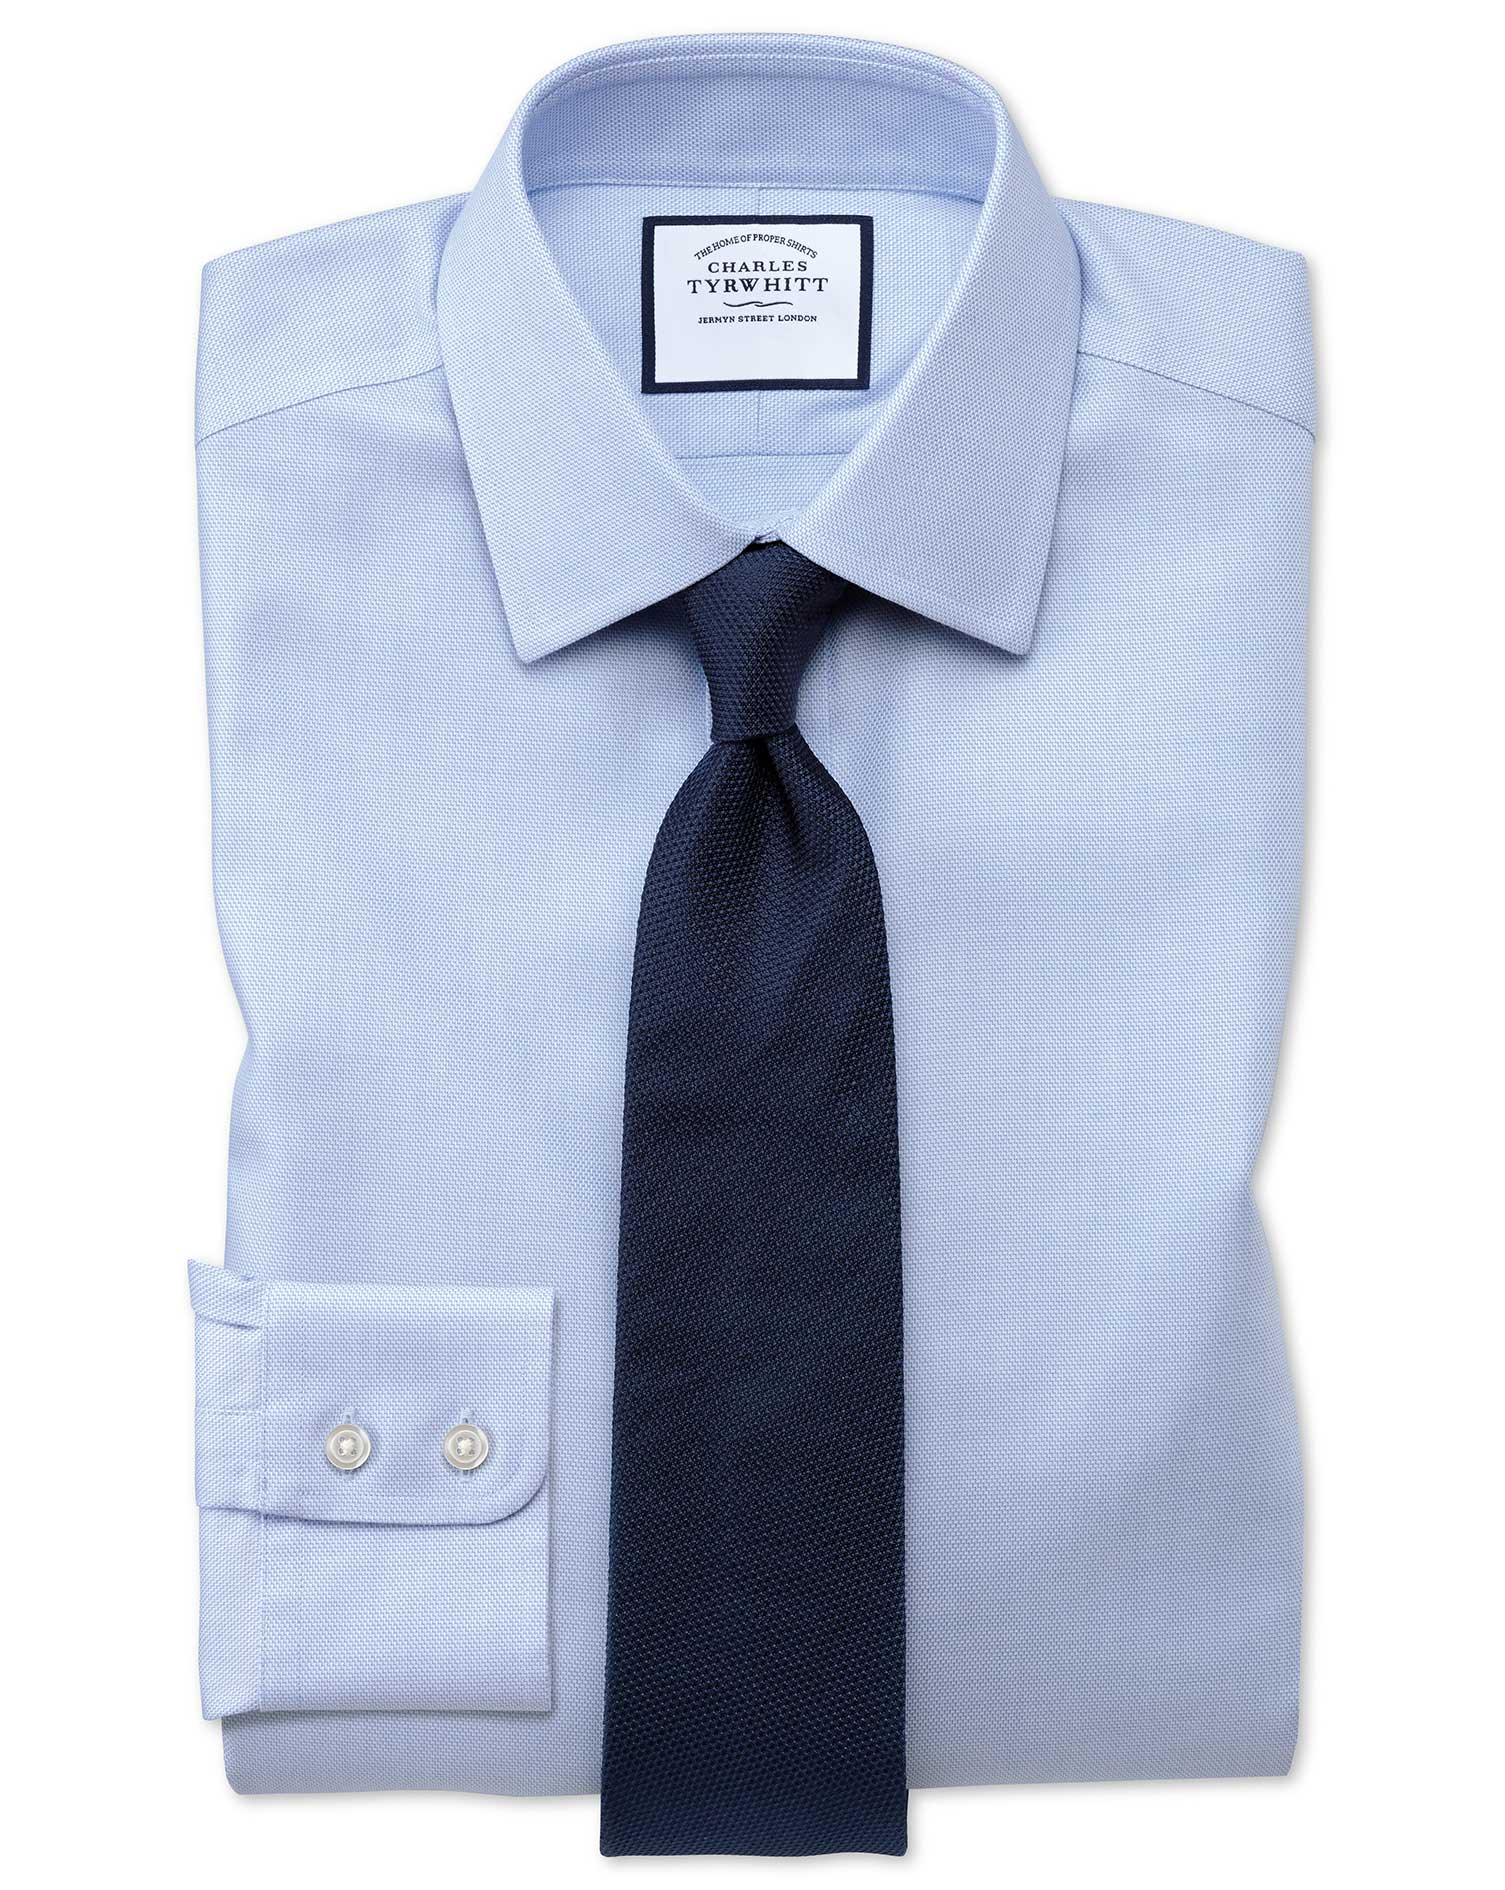 Extra Slim Fit Non-Iron Step Weave Sky Blue Cotton Formal Shirt Double Cuff Size 16.5/34 by Charles